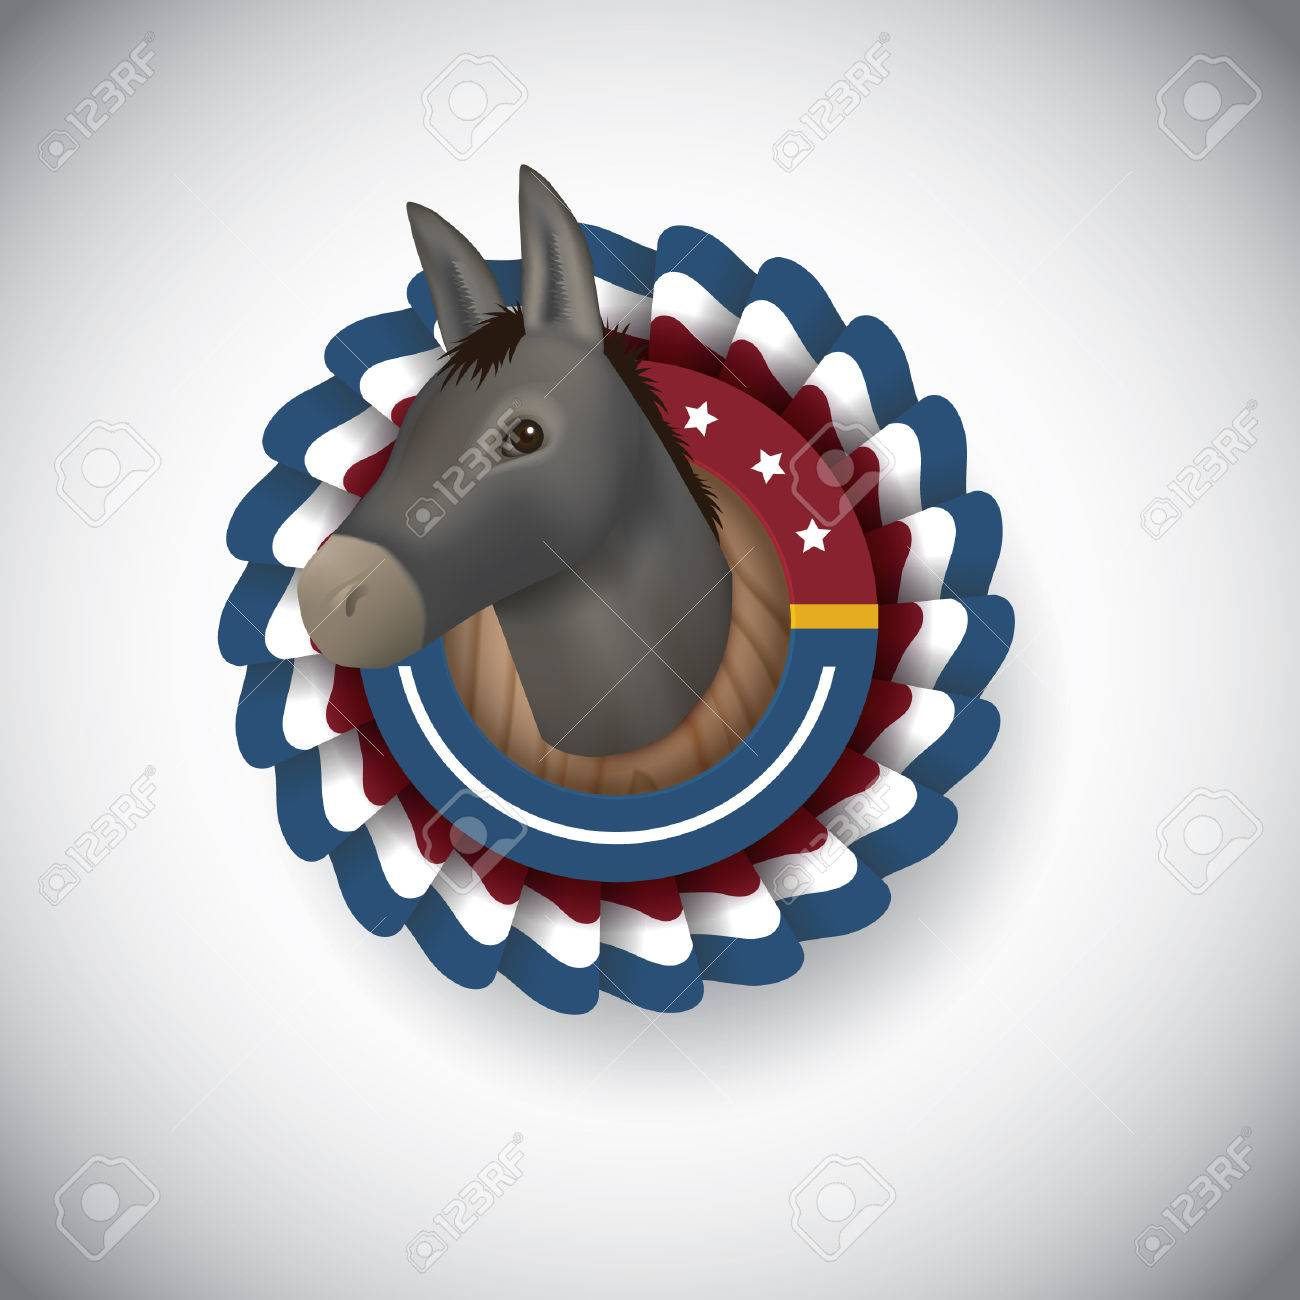 Democratic party symbol royalty free cliparts vectors and stock democratic party symbol stock vector 43246194 biocorpaavc Image collections